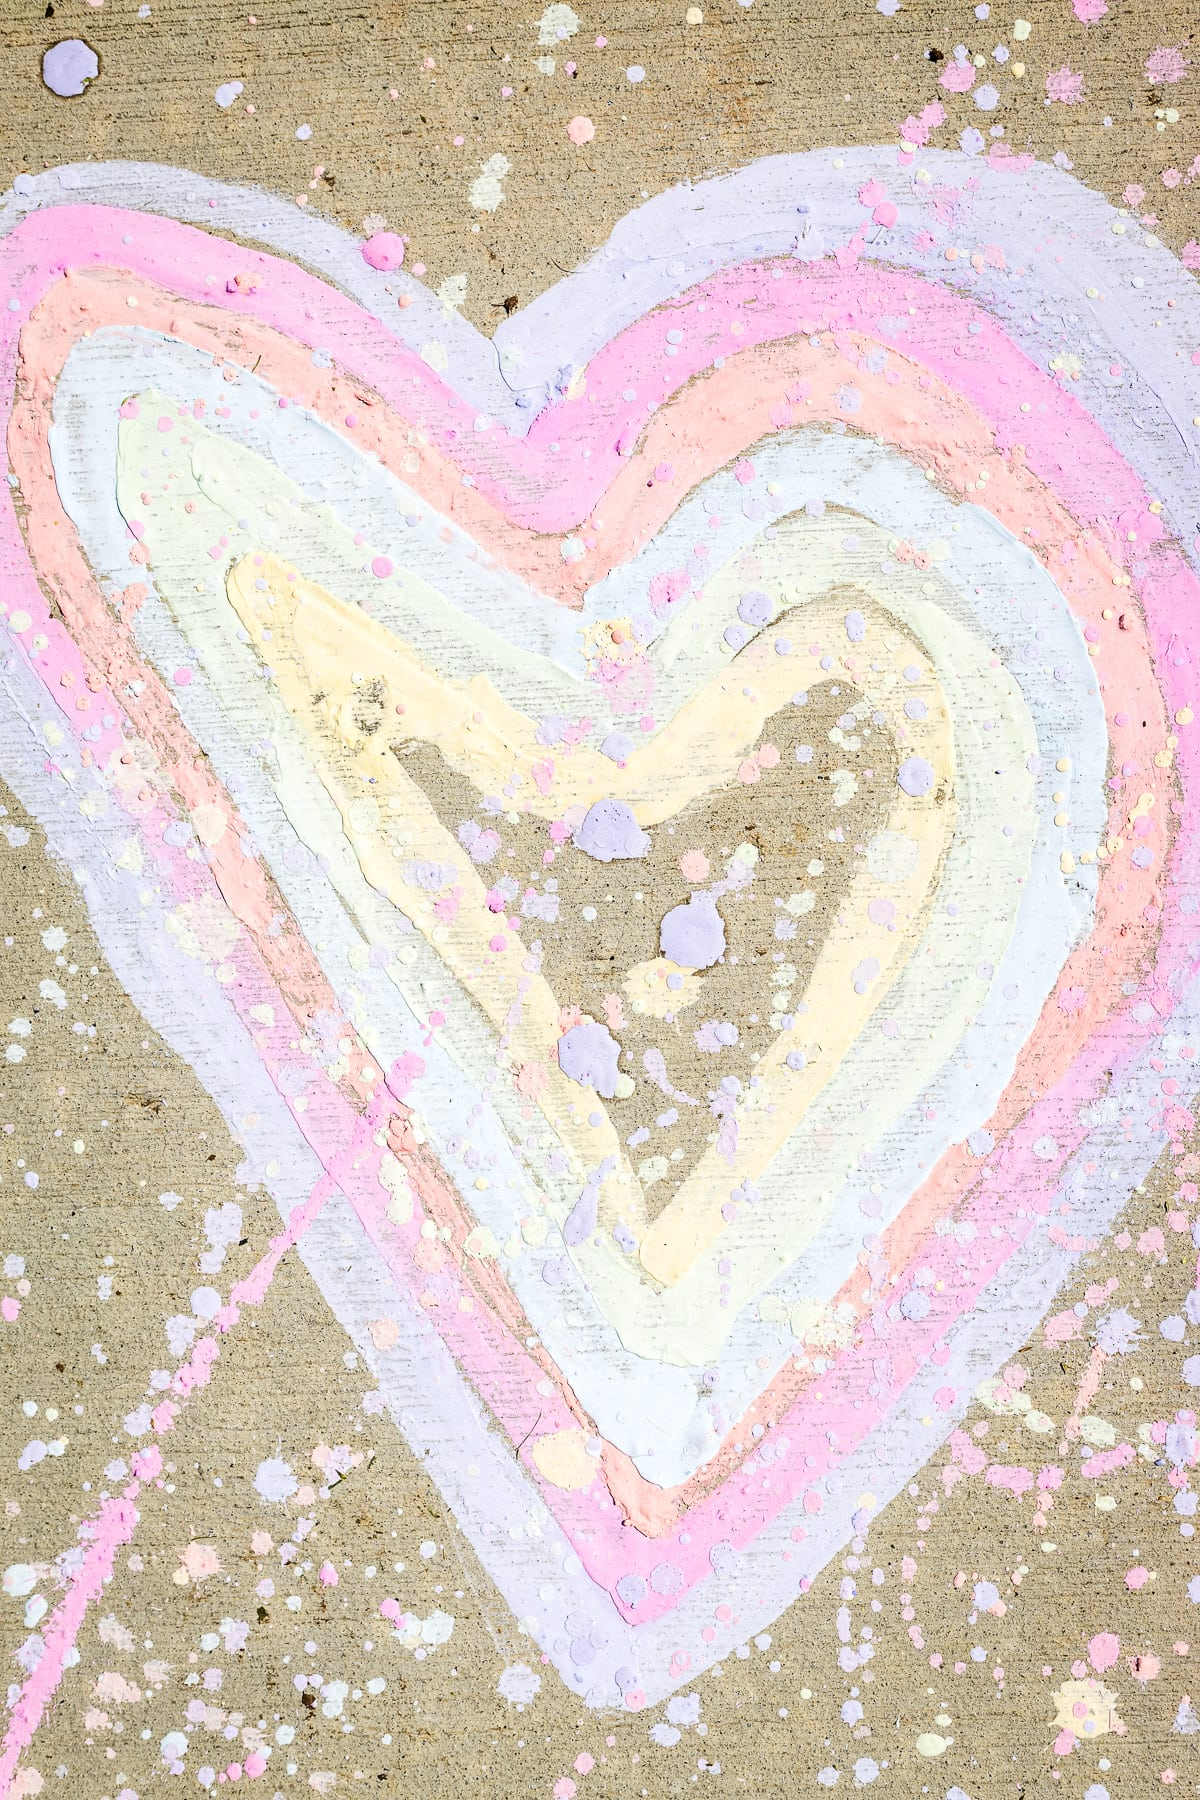 Heart made of sidewalk chalk paint with paint splatter over t